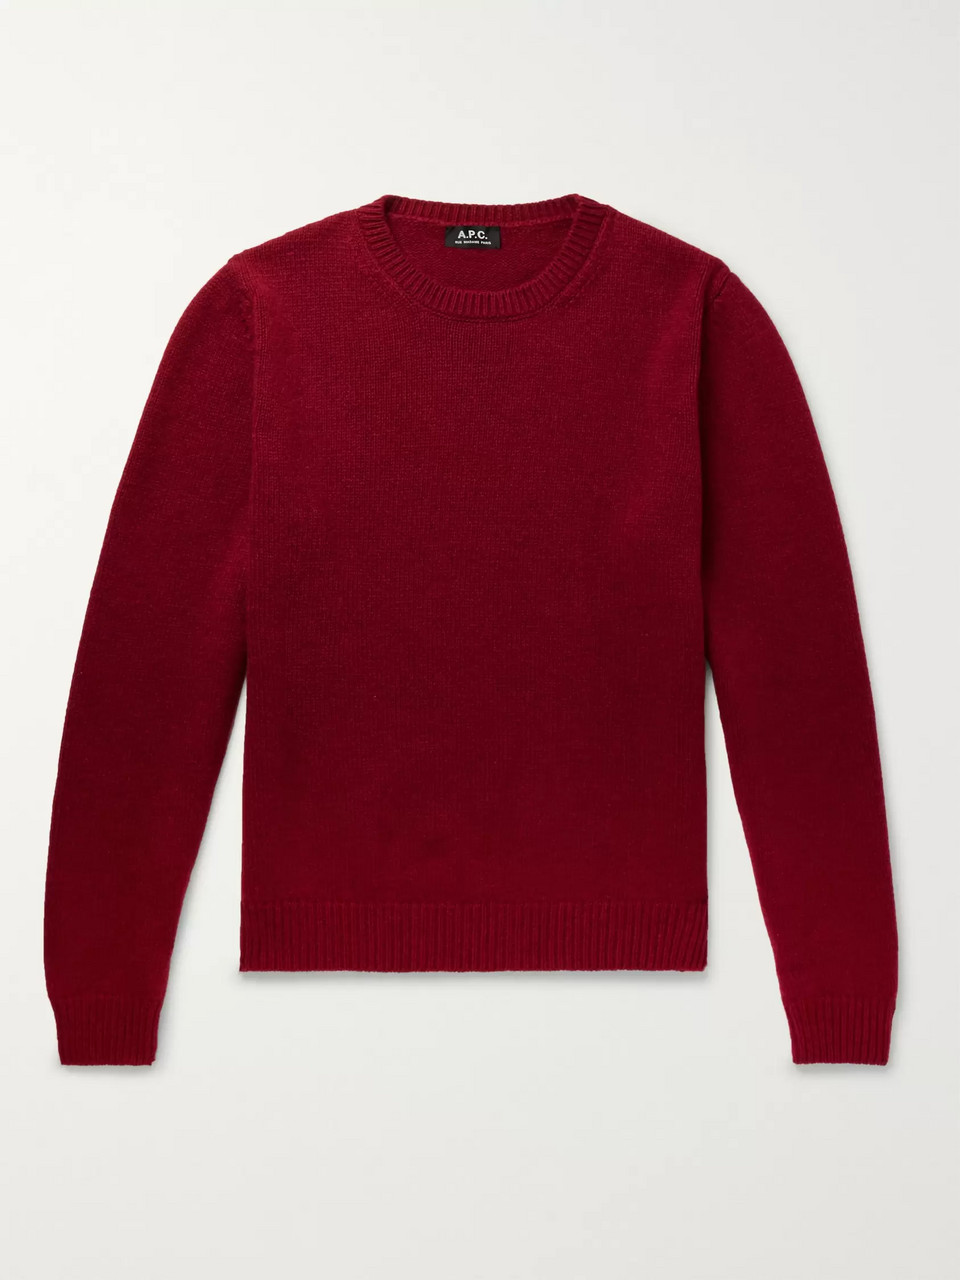 A.P.C. Wool Sweater